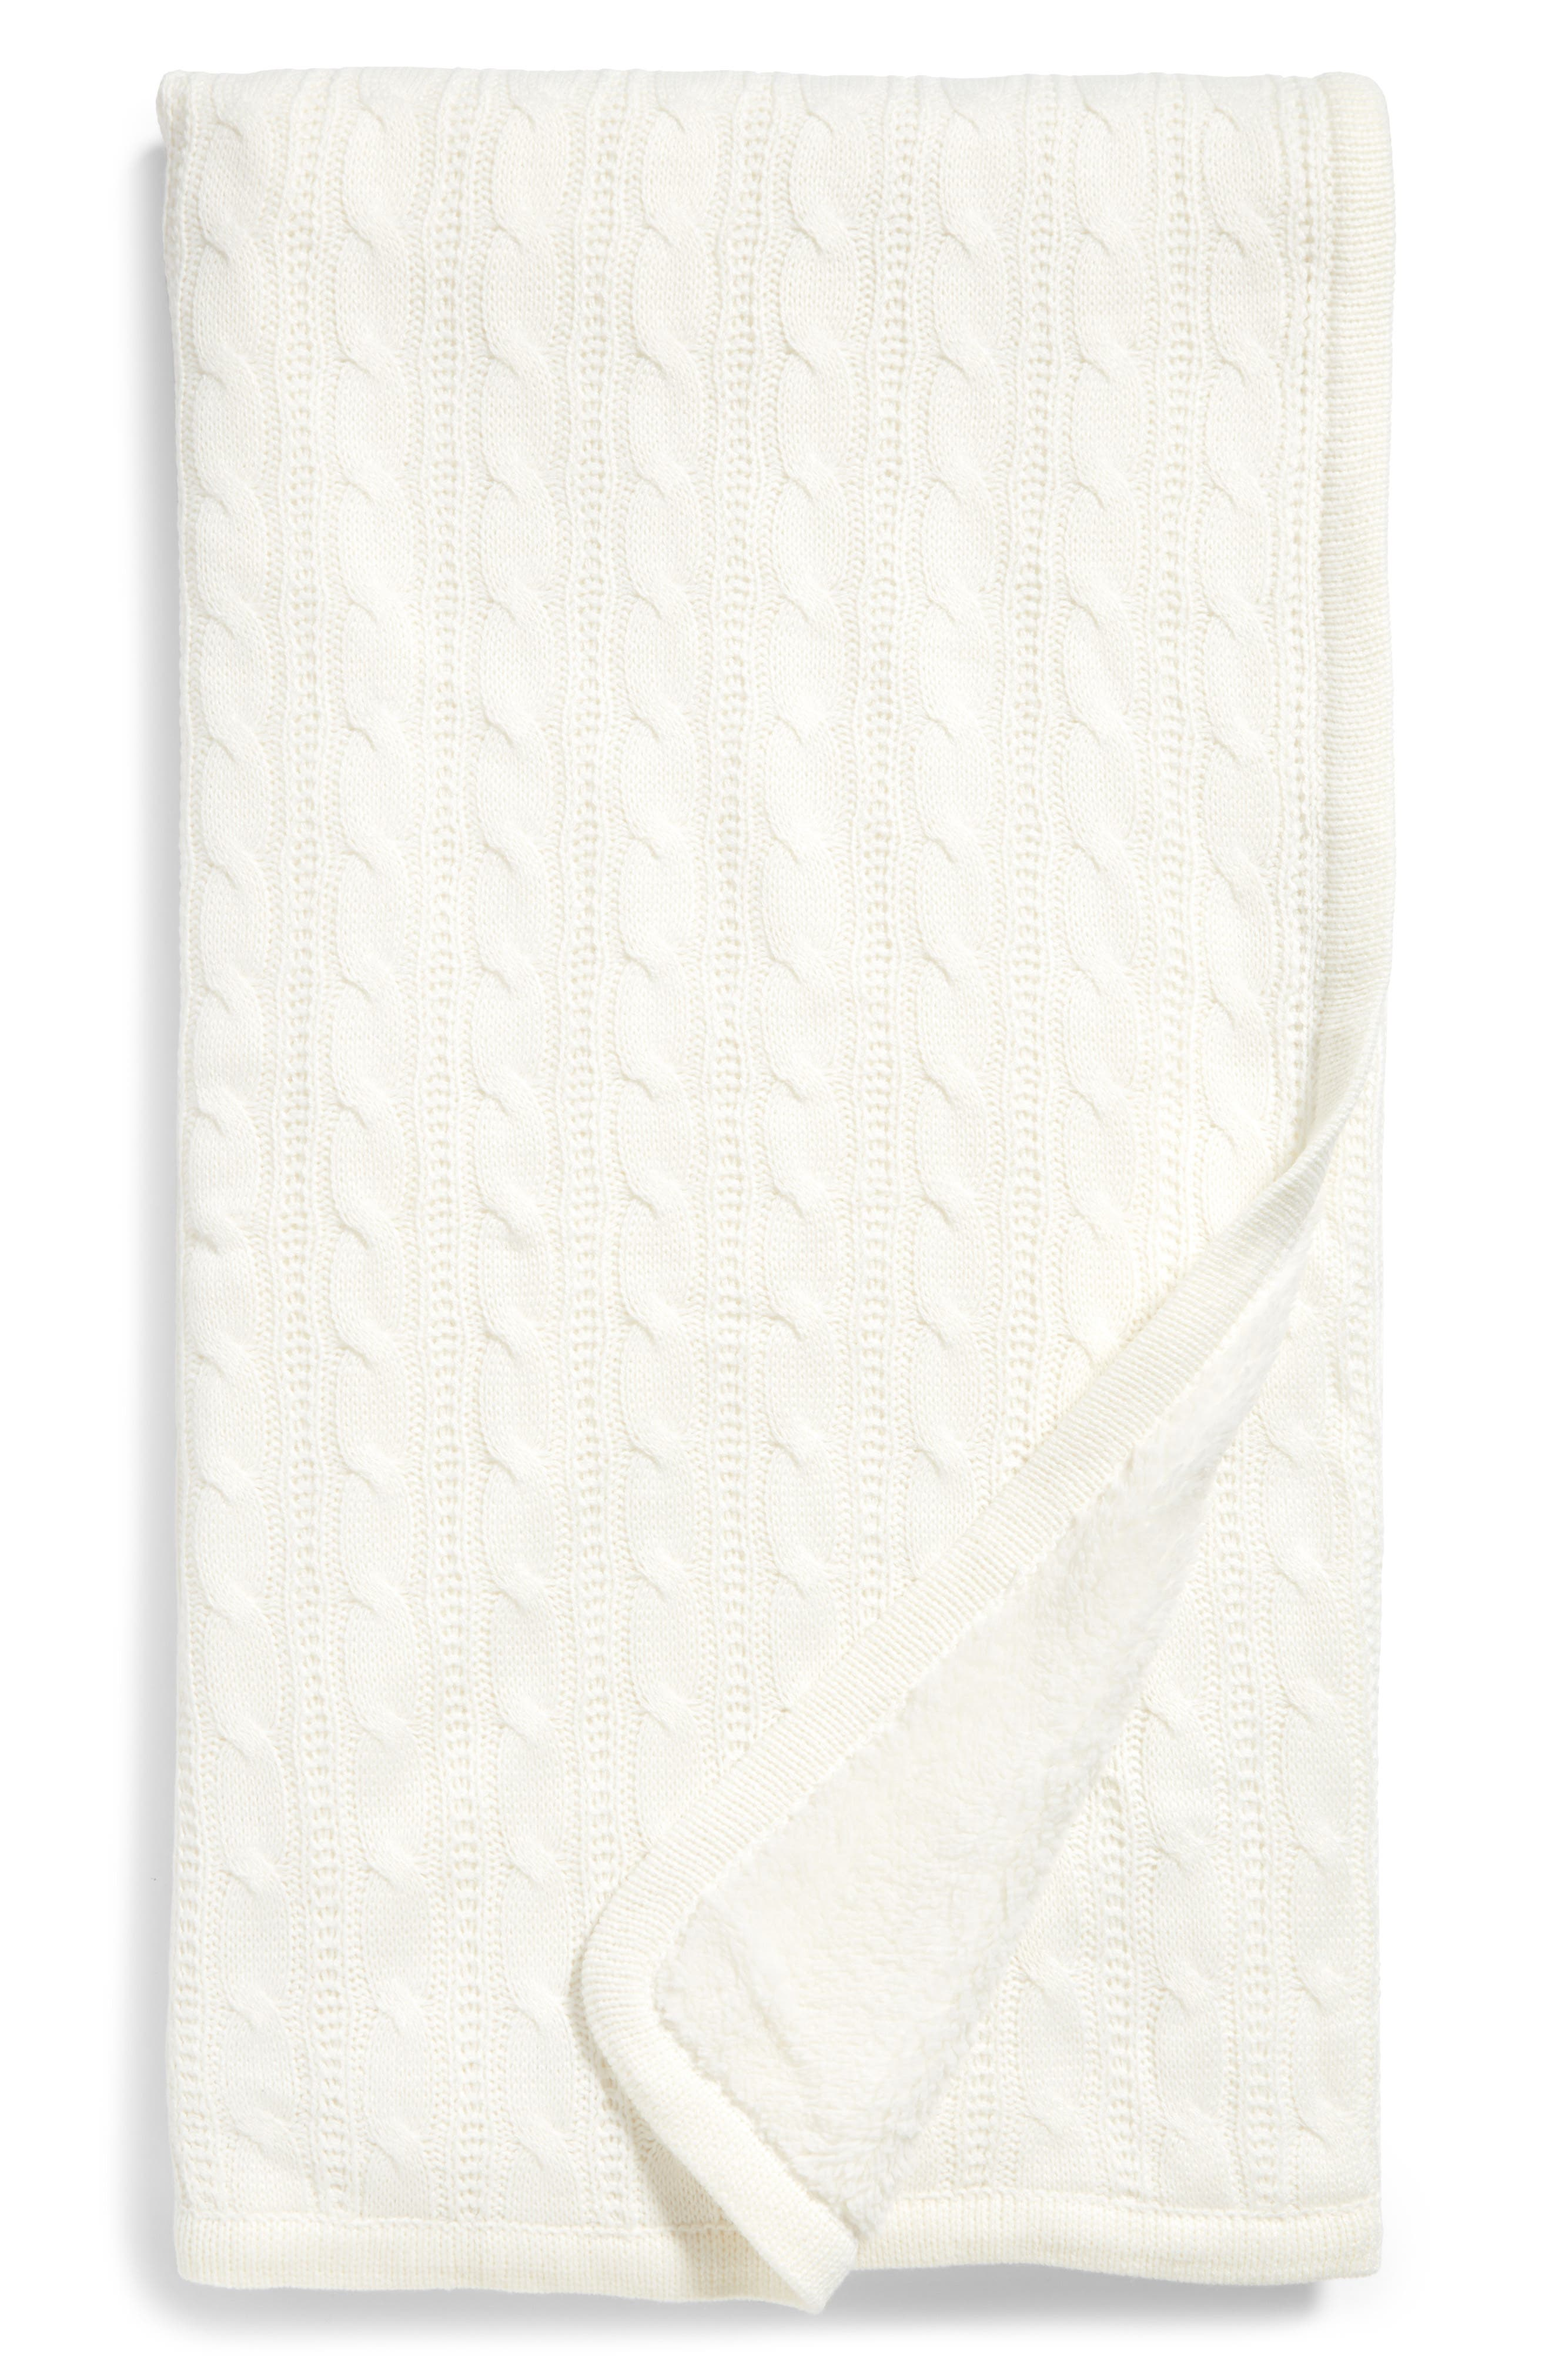 Cable Knit Throw Blanket,                         Main,                         color, Ivory